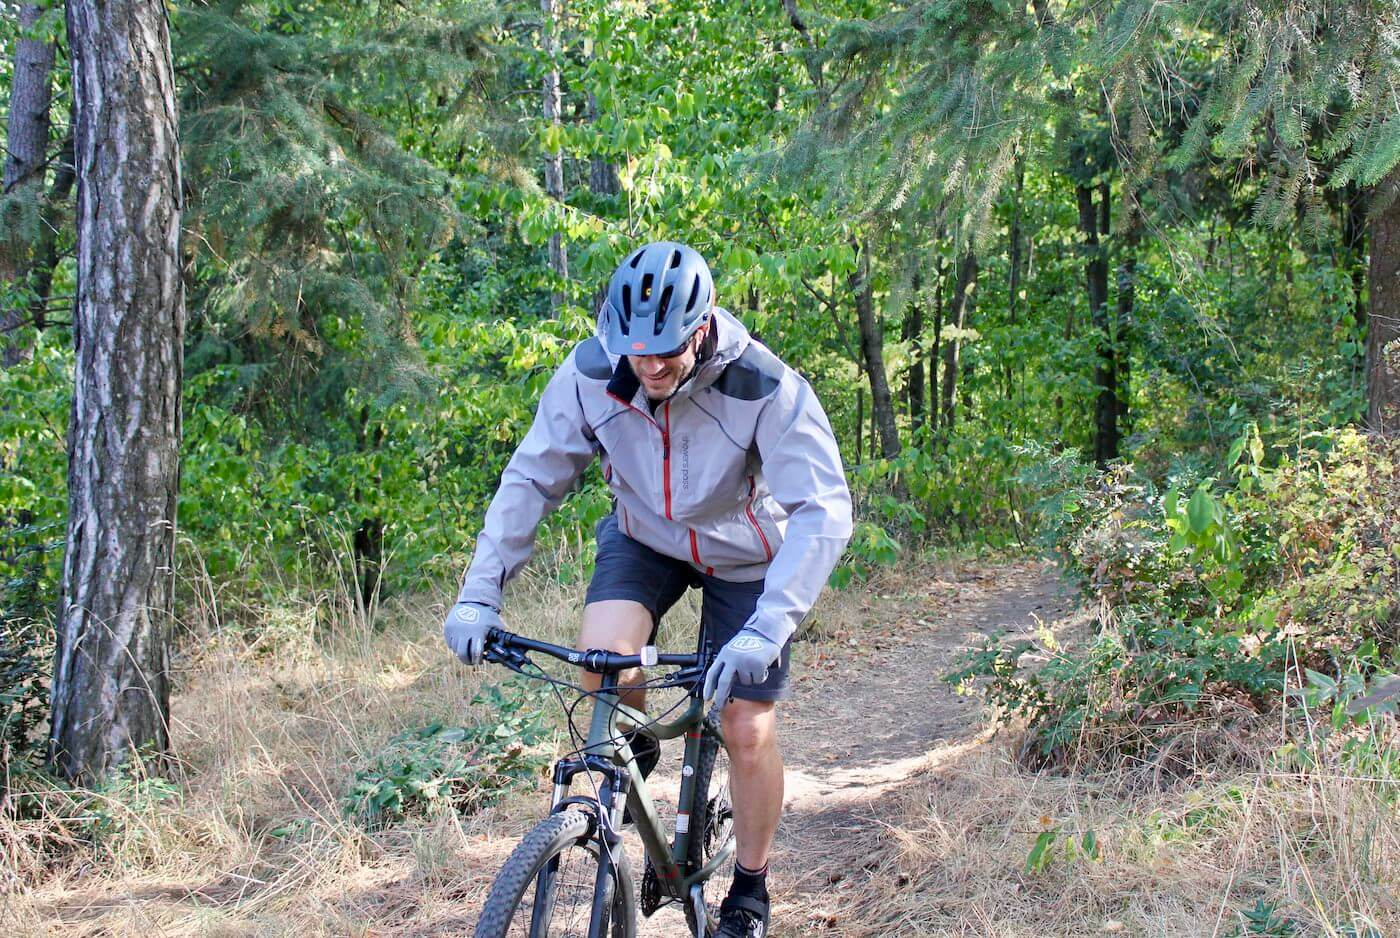 This photo shows the author wearing the Showers Pass Elements Jacket during testing during the mountain biking review process.